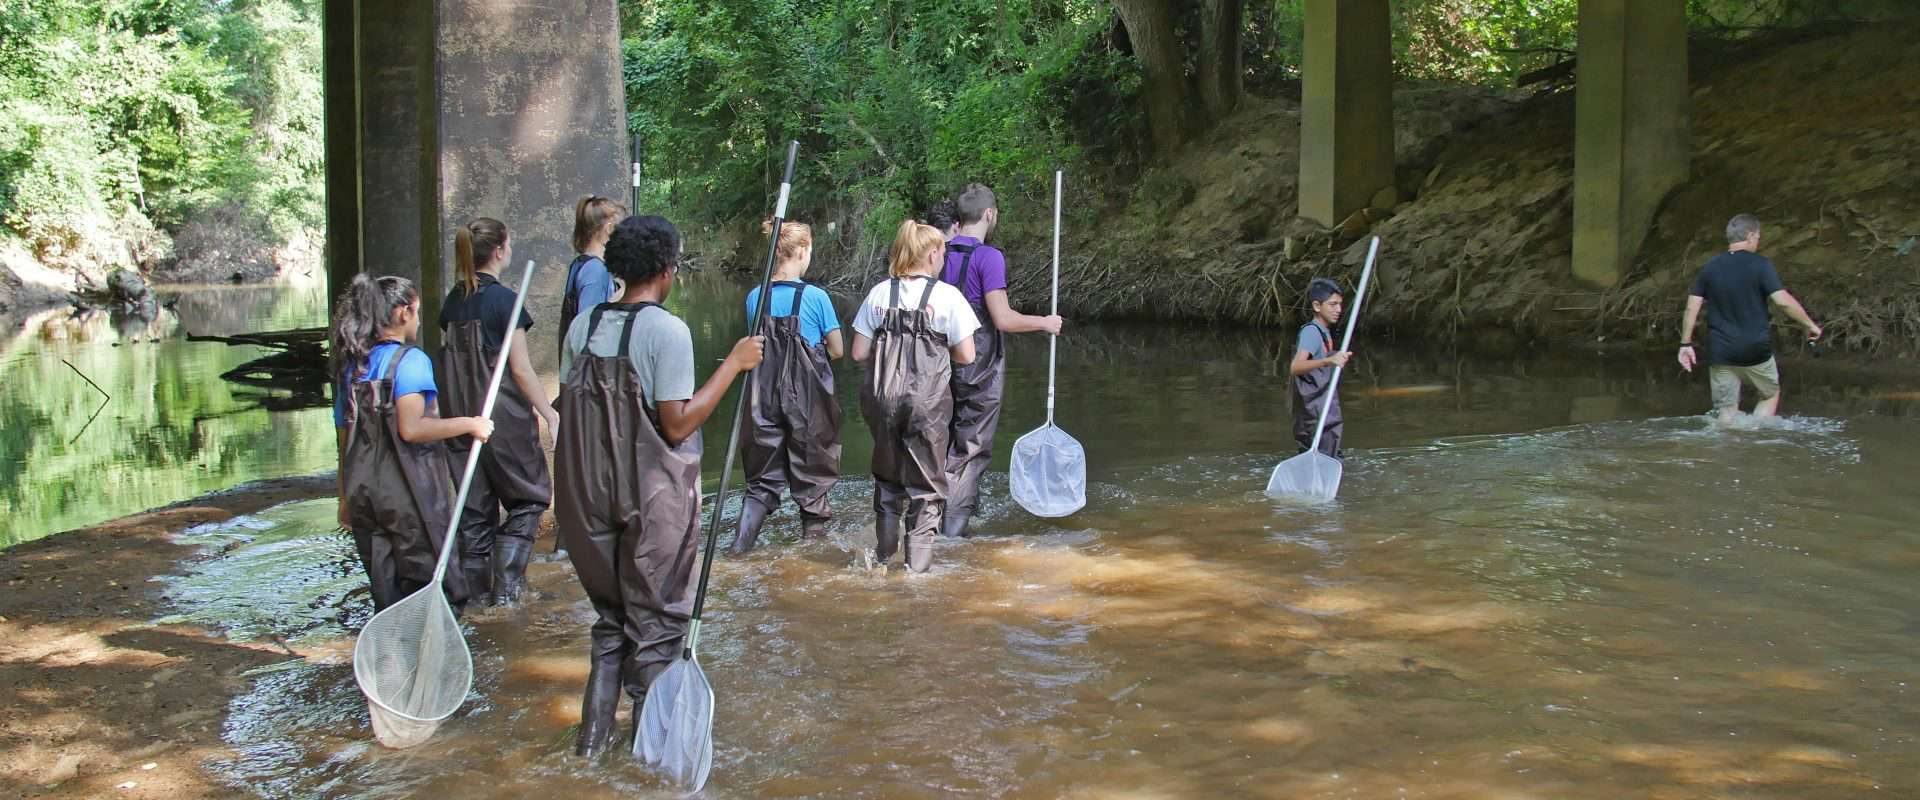 WPU students conduct experiments in Crabtree Creek.